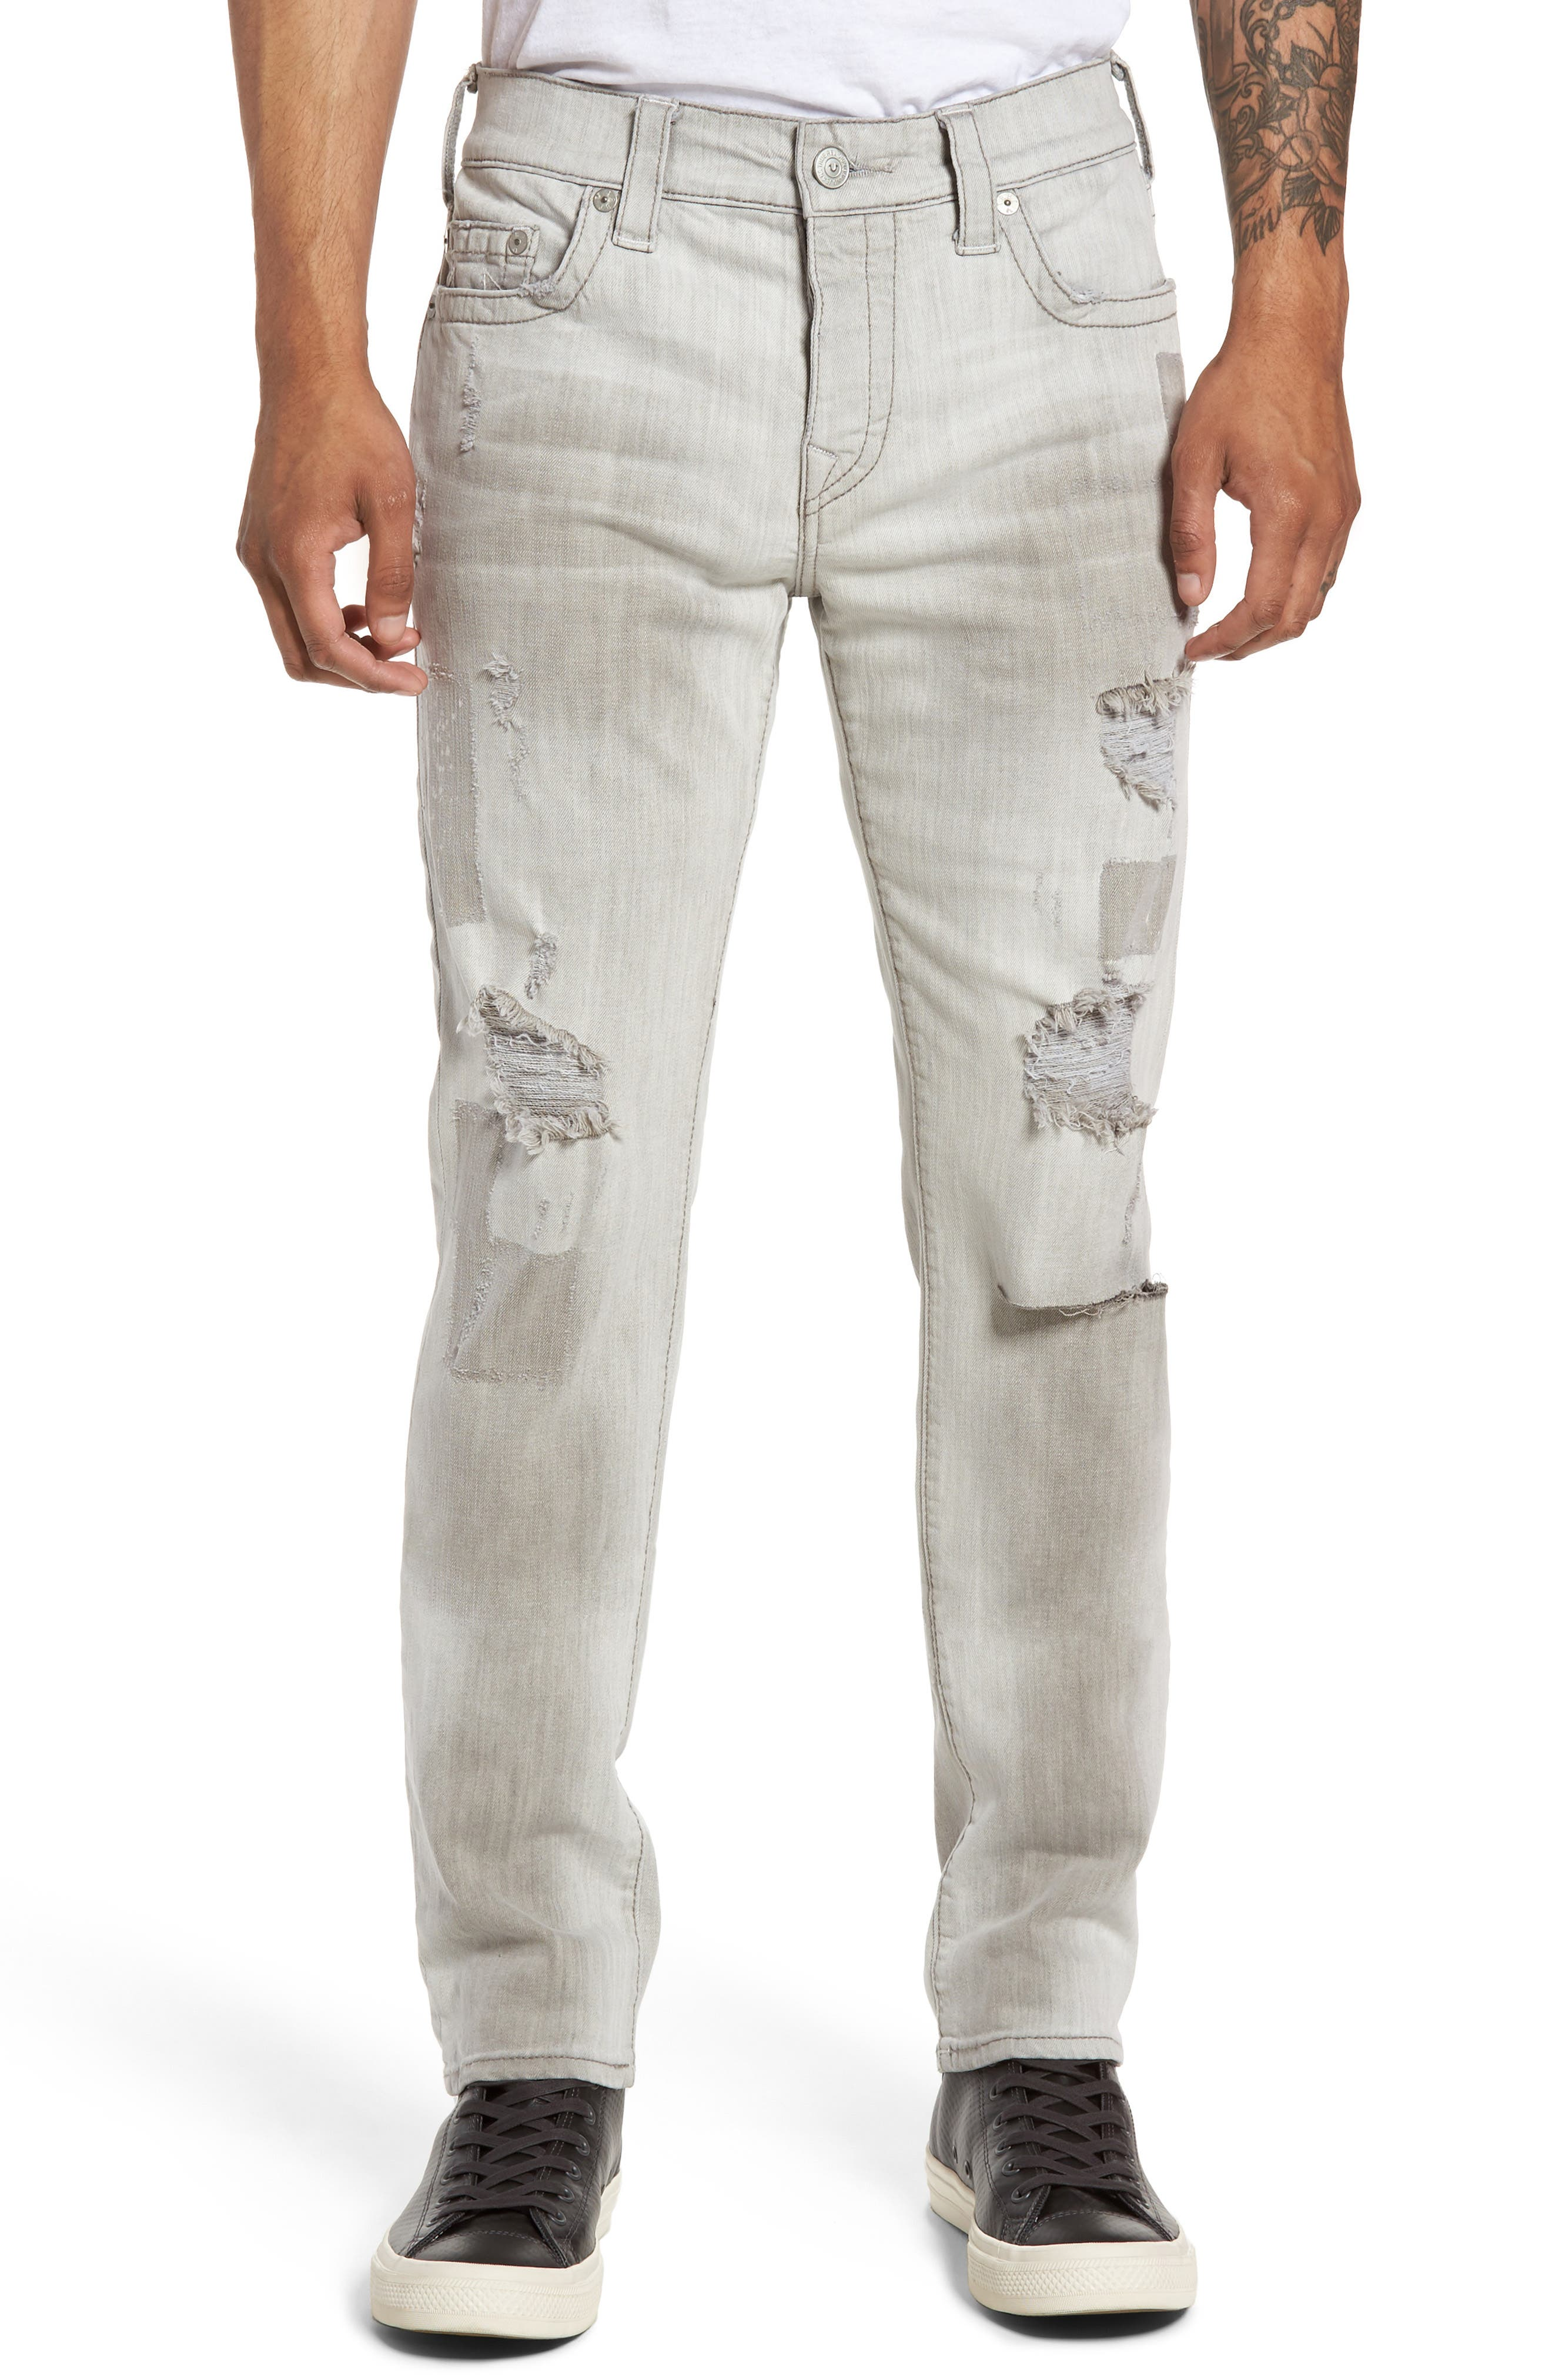 Rocco Skinny Fit Jeans,                         Main,                         color, 406